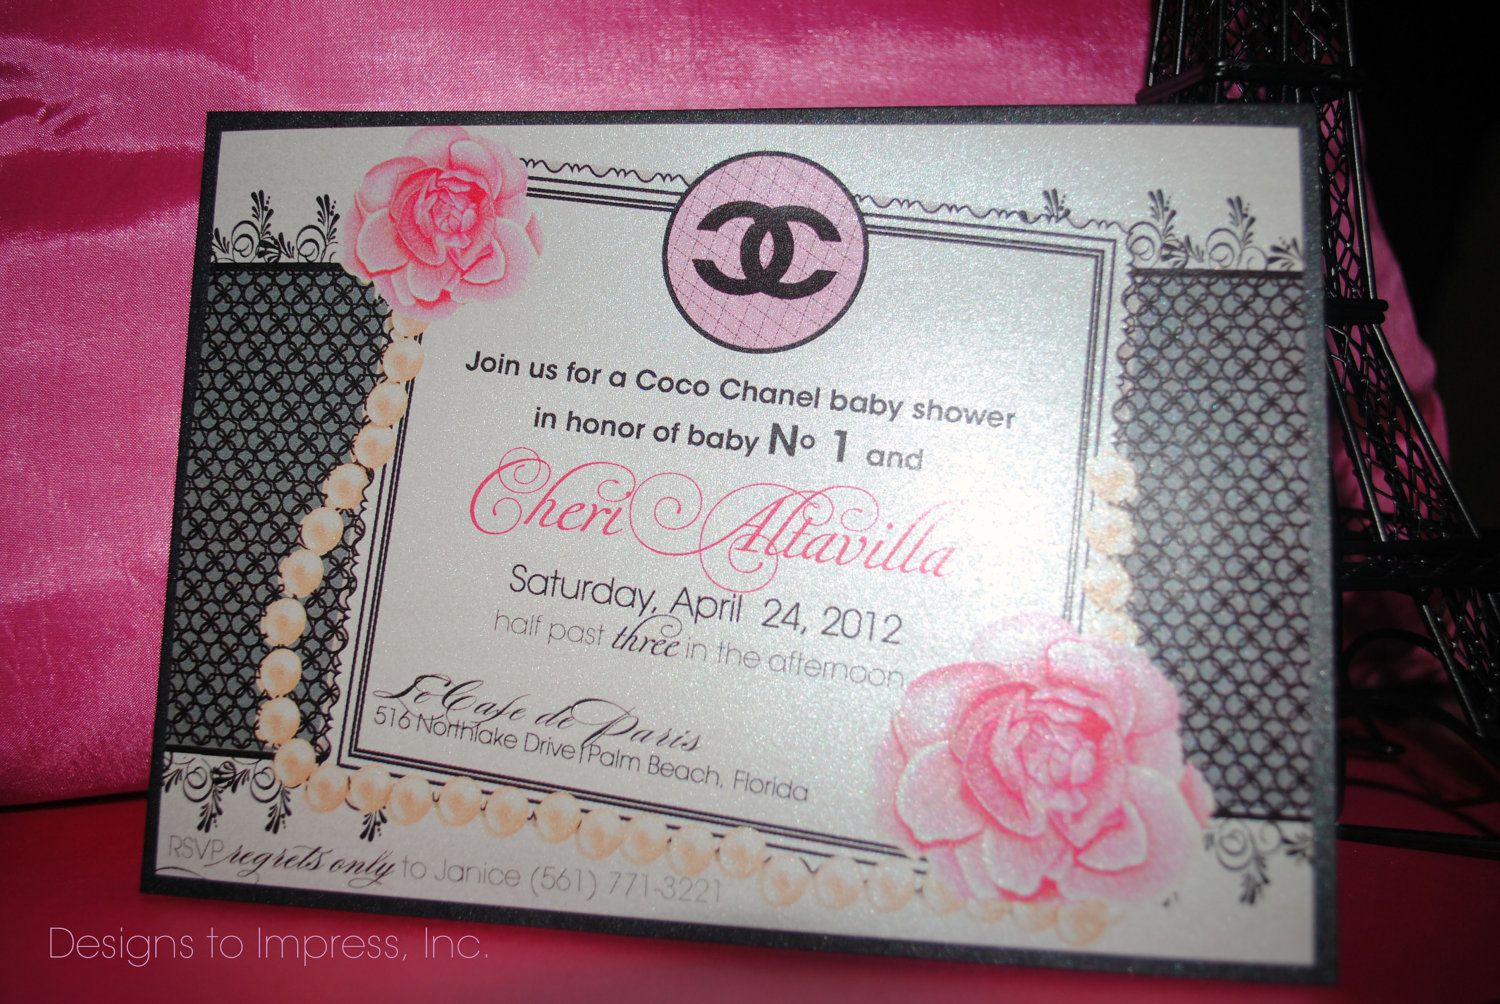 Reserved listing for nicole gonzalez 60 coco chanel baby shower set of 10 coco chanel shower invitations wedding baby bridal pink flowers pearls elegant classy designer themed stationery filmwisefo